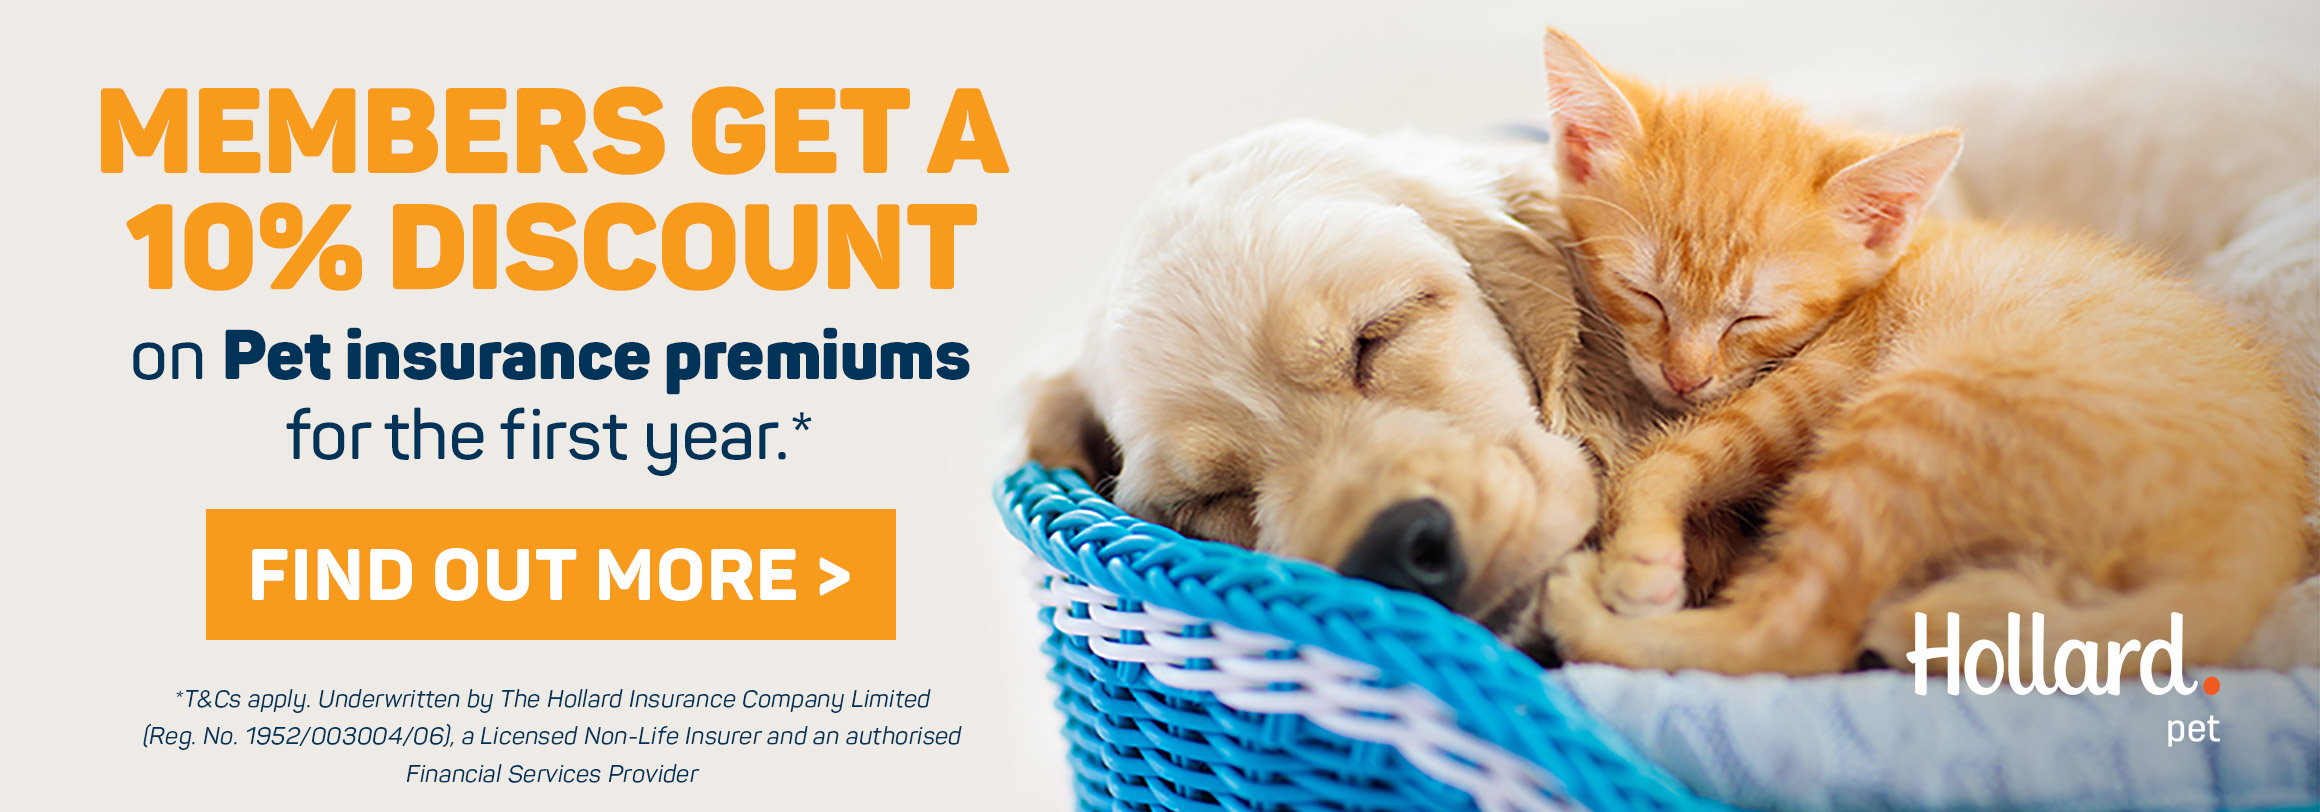 Members get a 10% discount on Pet insurance premiums